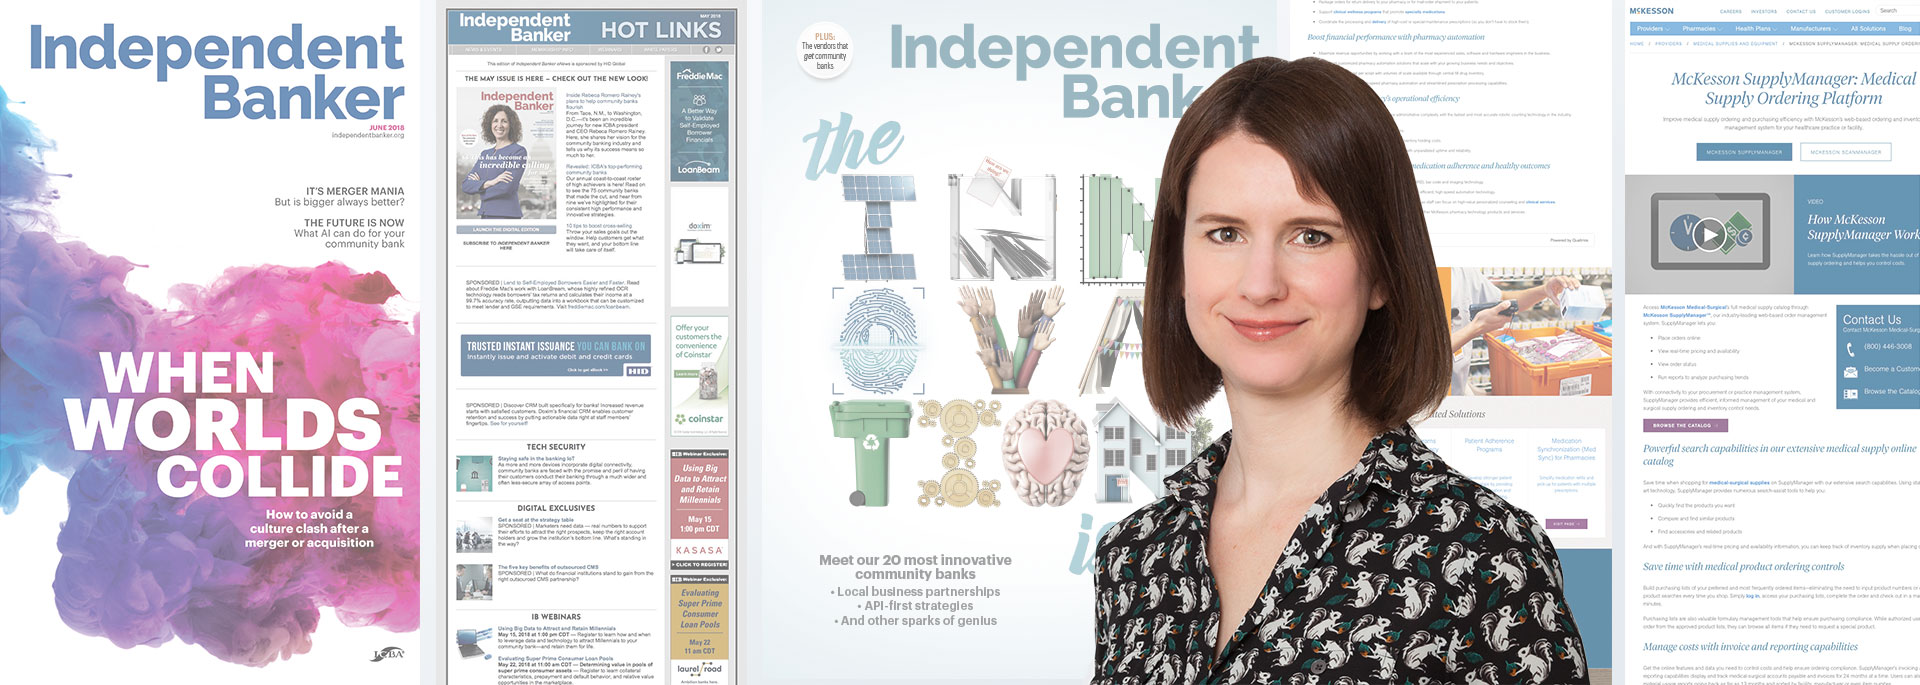 Photograph of Molly Bennett with some of her notable work for Independent Banker magazine and website